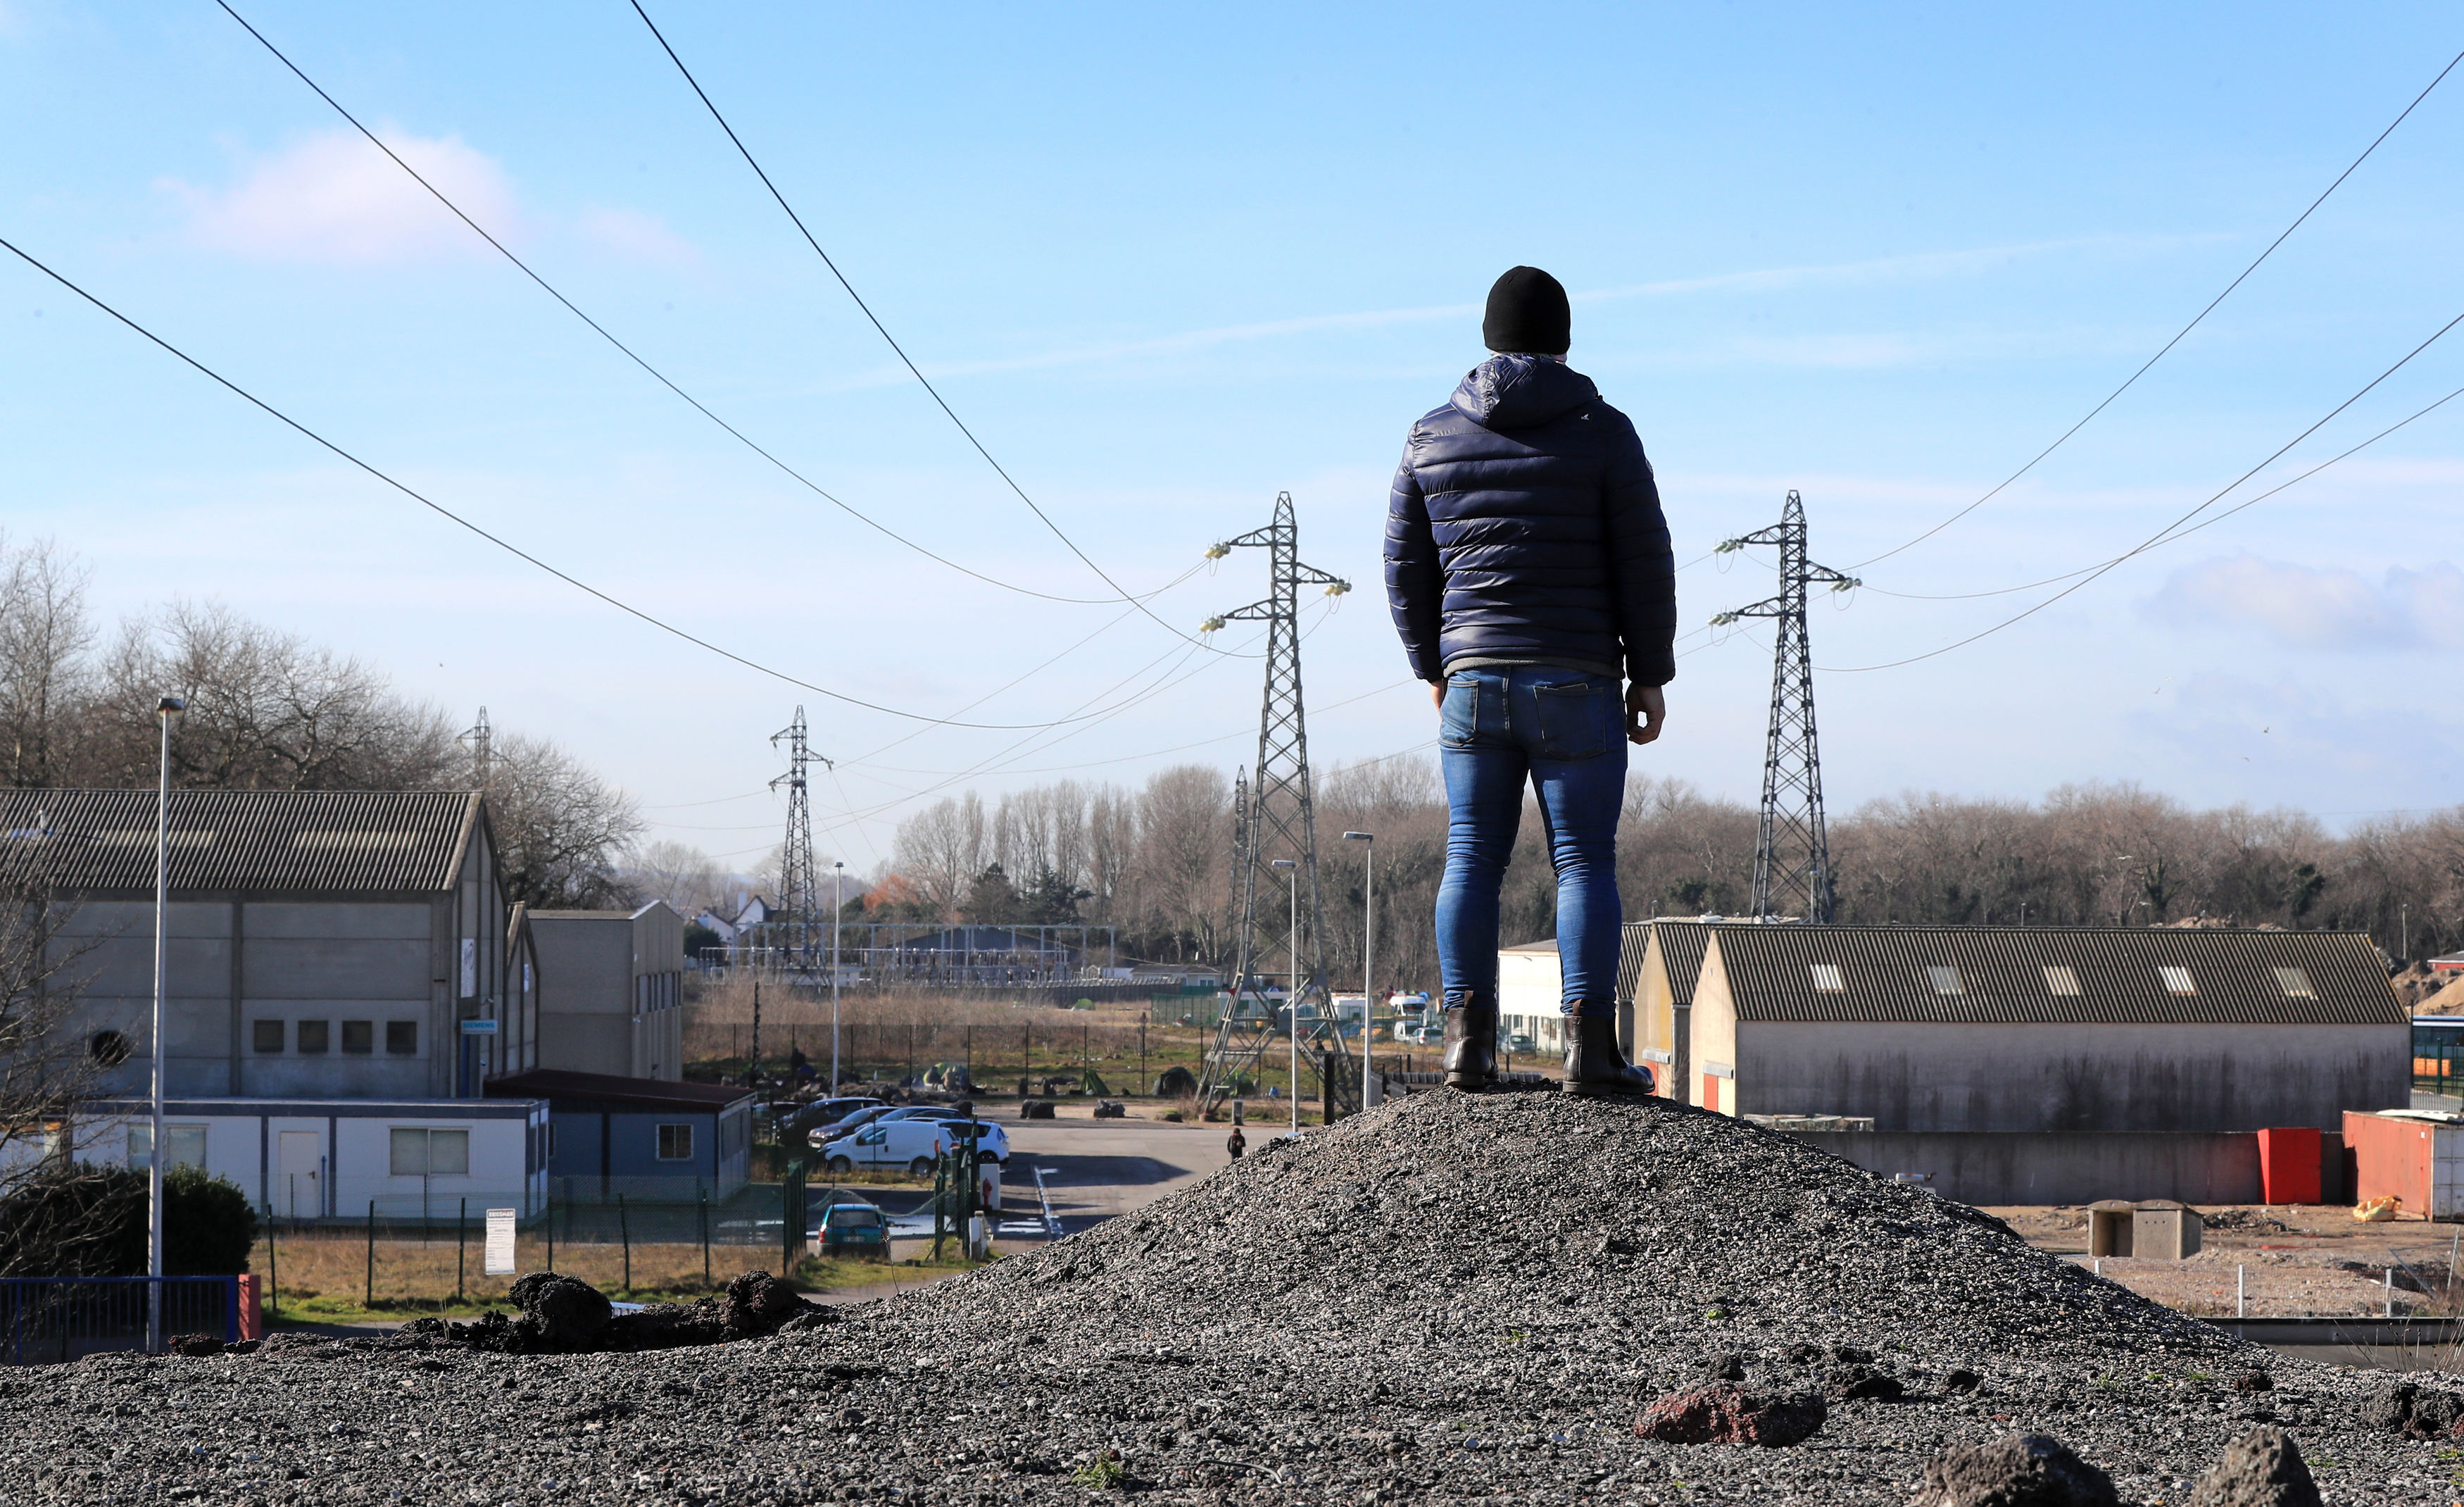 Ali from Iran, who lives in a tented camp in Calais, France